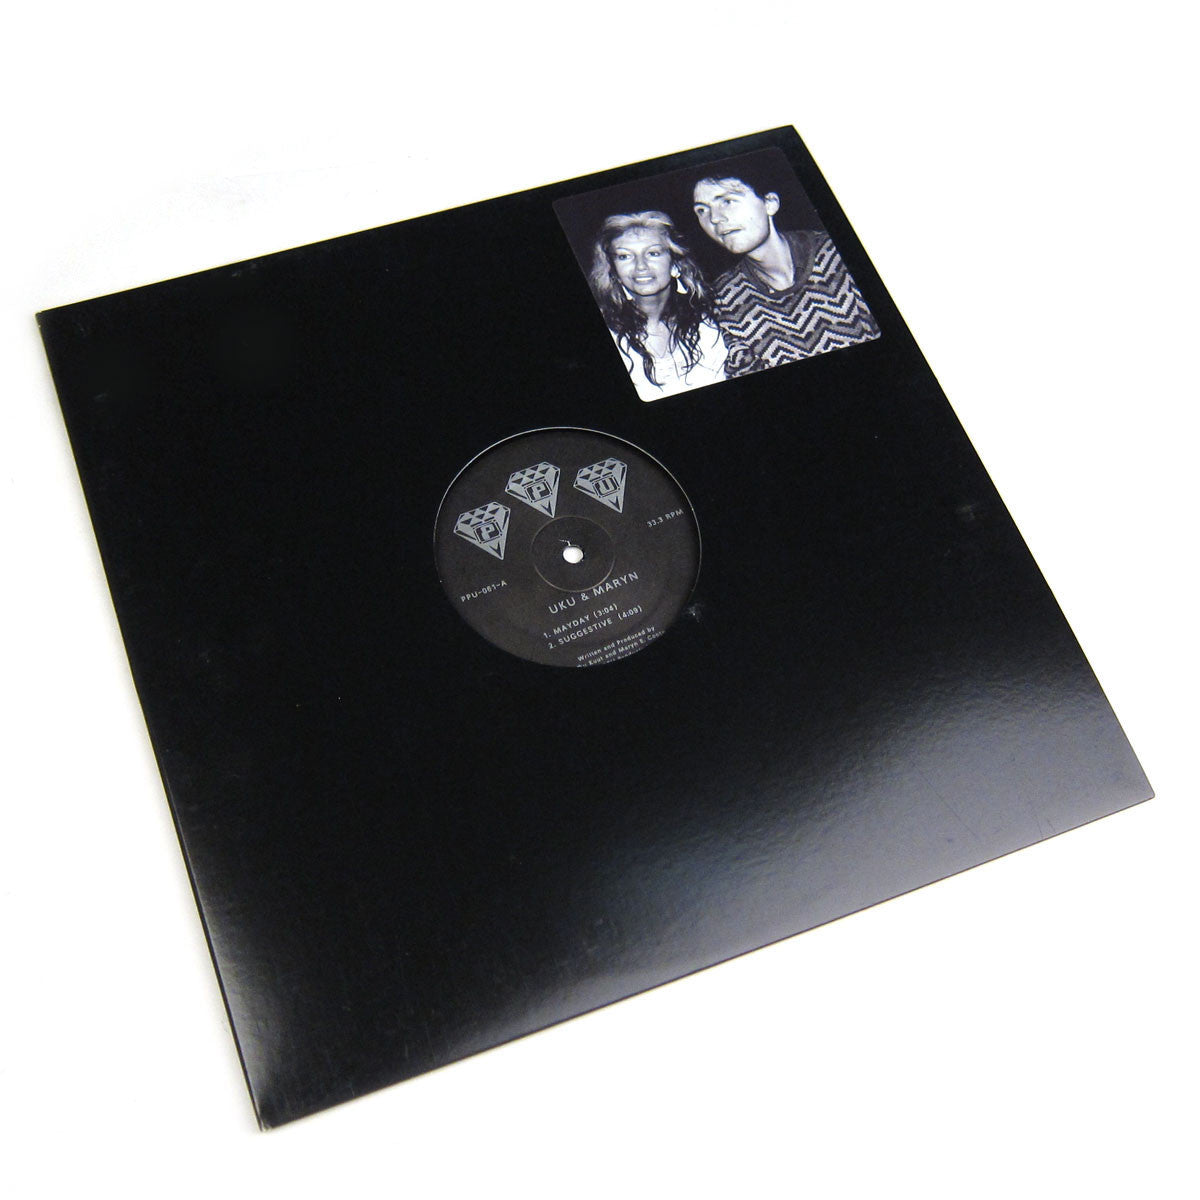 Uku Kuut & Maryn: Suggestive Vinyl 12""